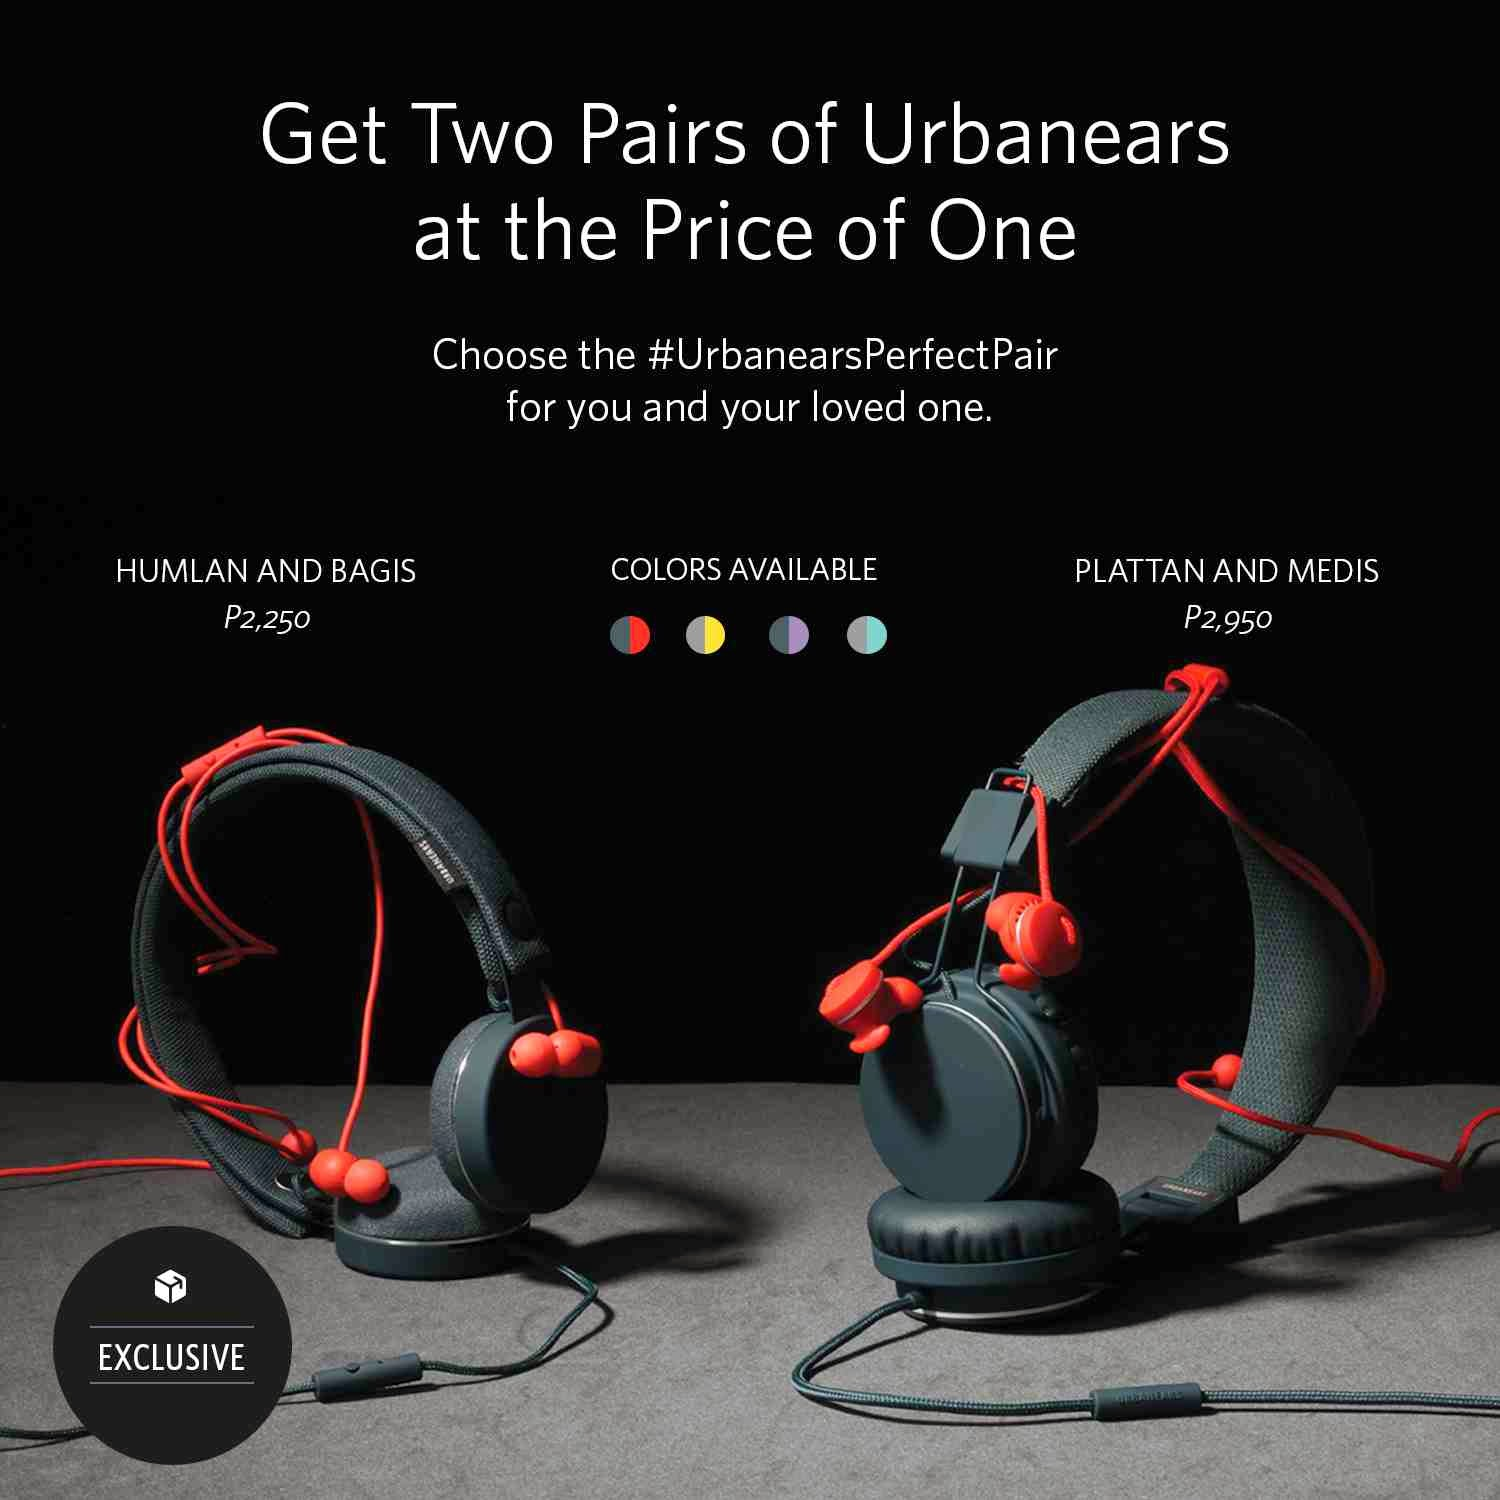 beyond the box urbanears valentines day promo 2014